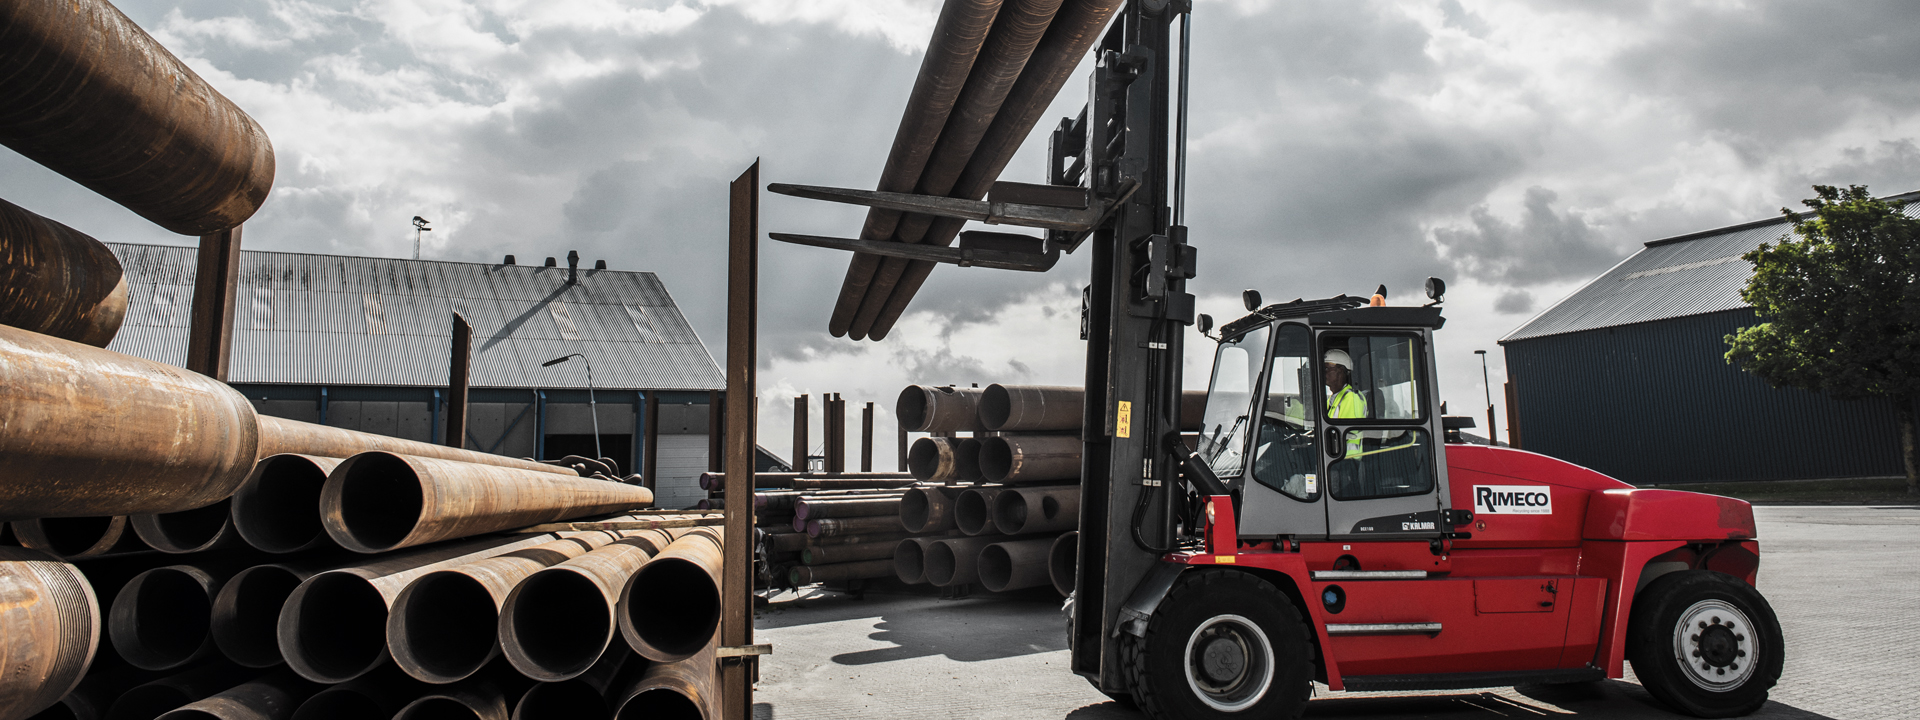 forklift lifting three metalrods